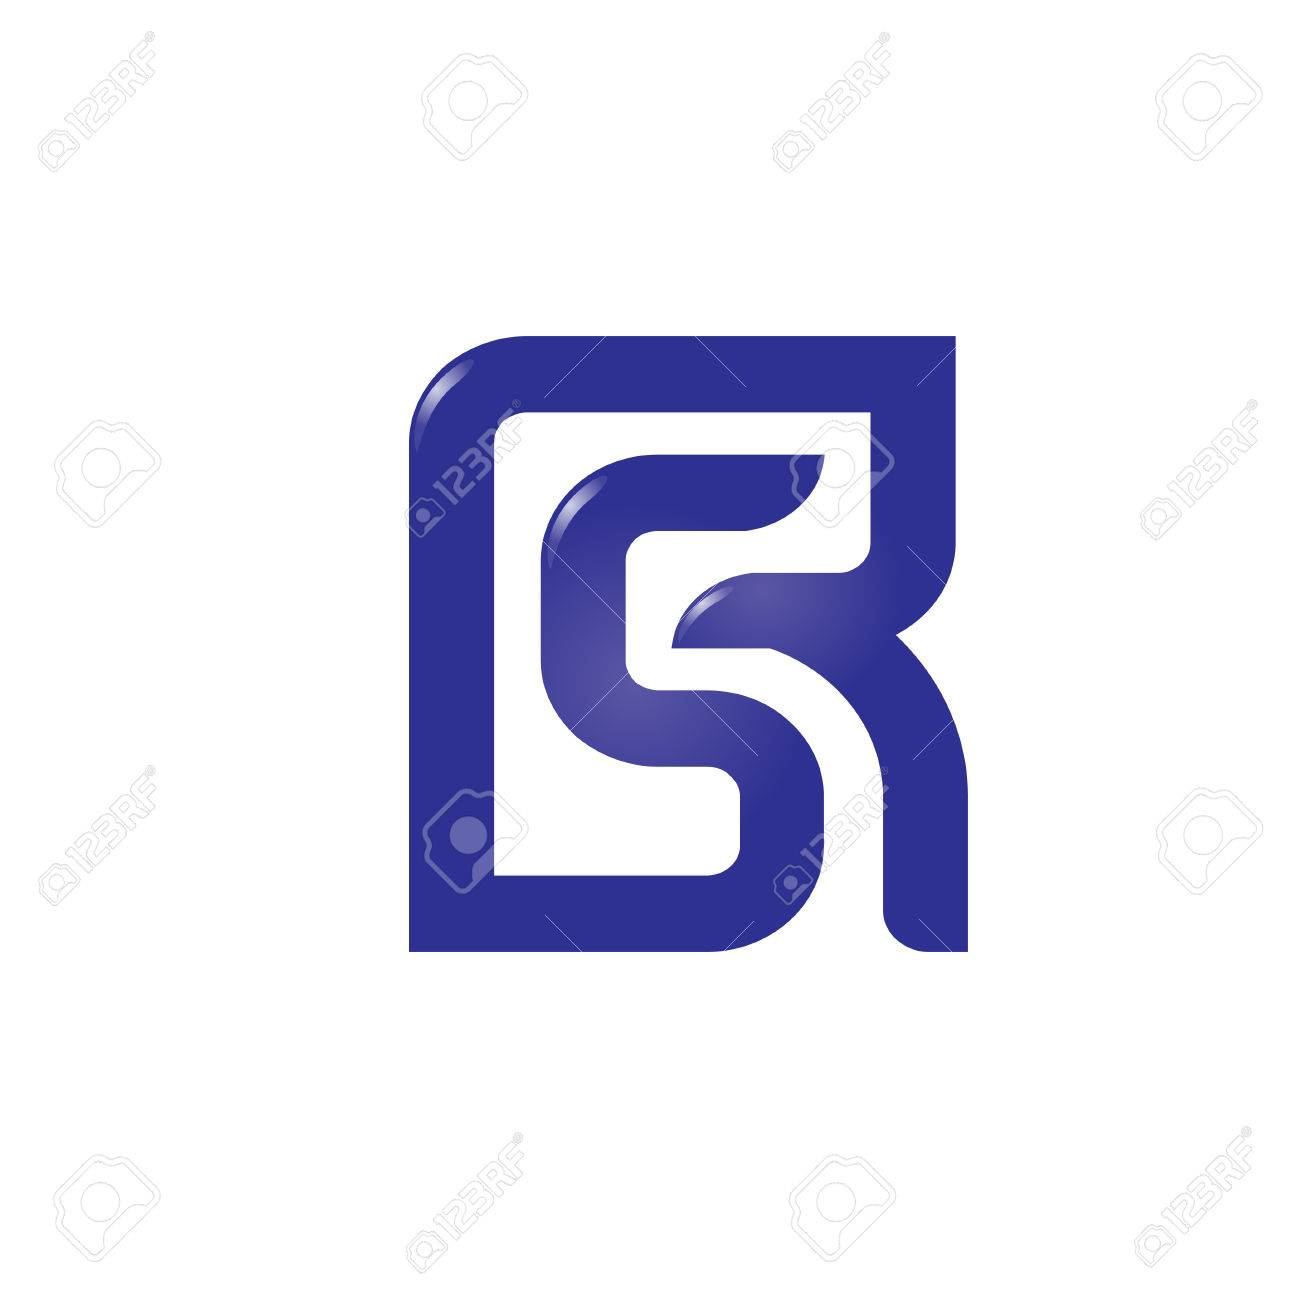 Letter r and s rssrletter s letter r logo royalty free cliparts letter r and s rssrletter s letter r logo stock buycottarizona Image collections